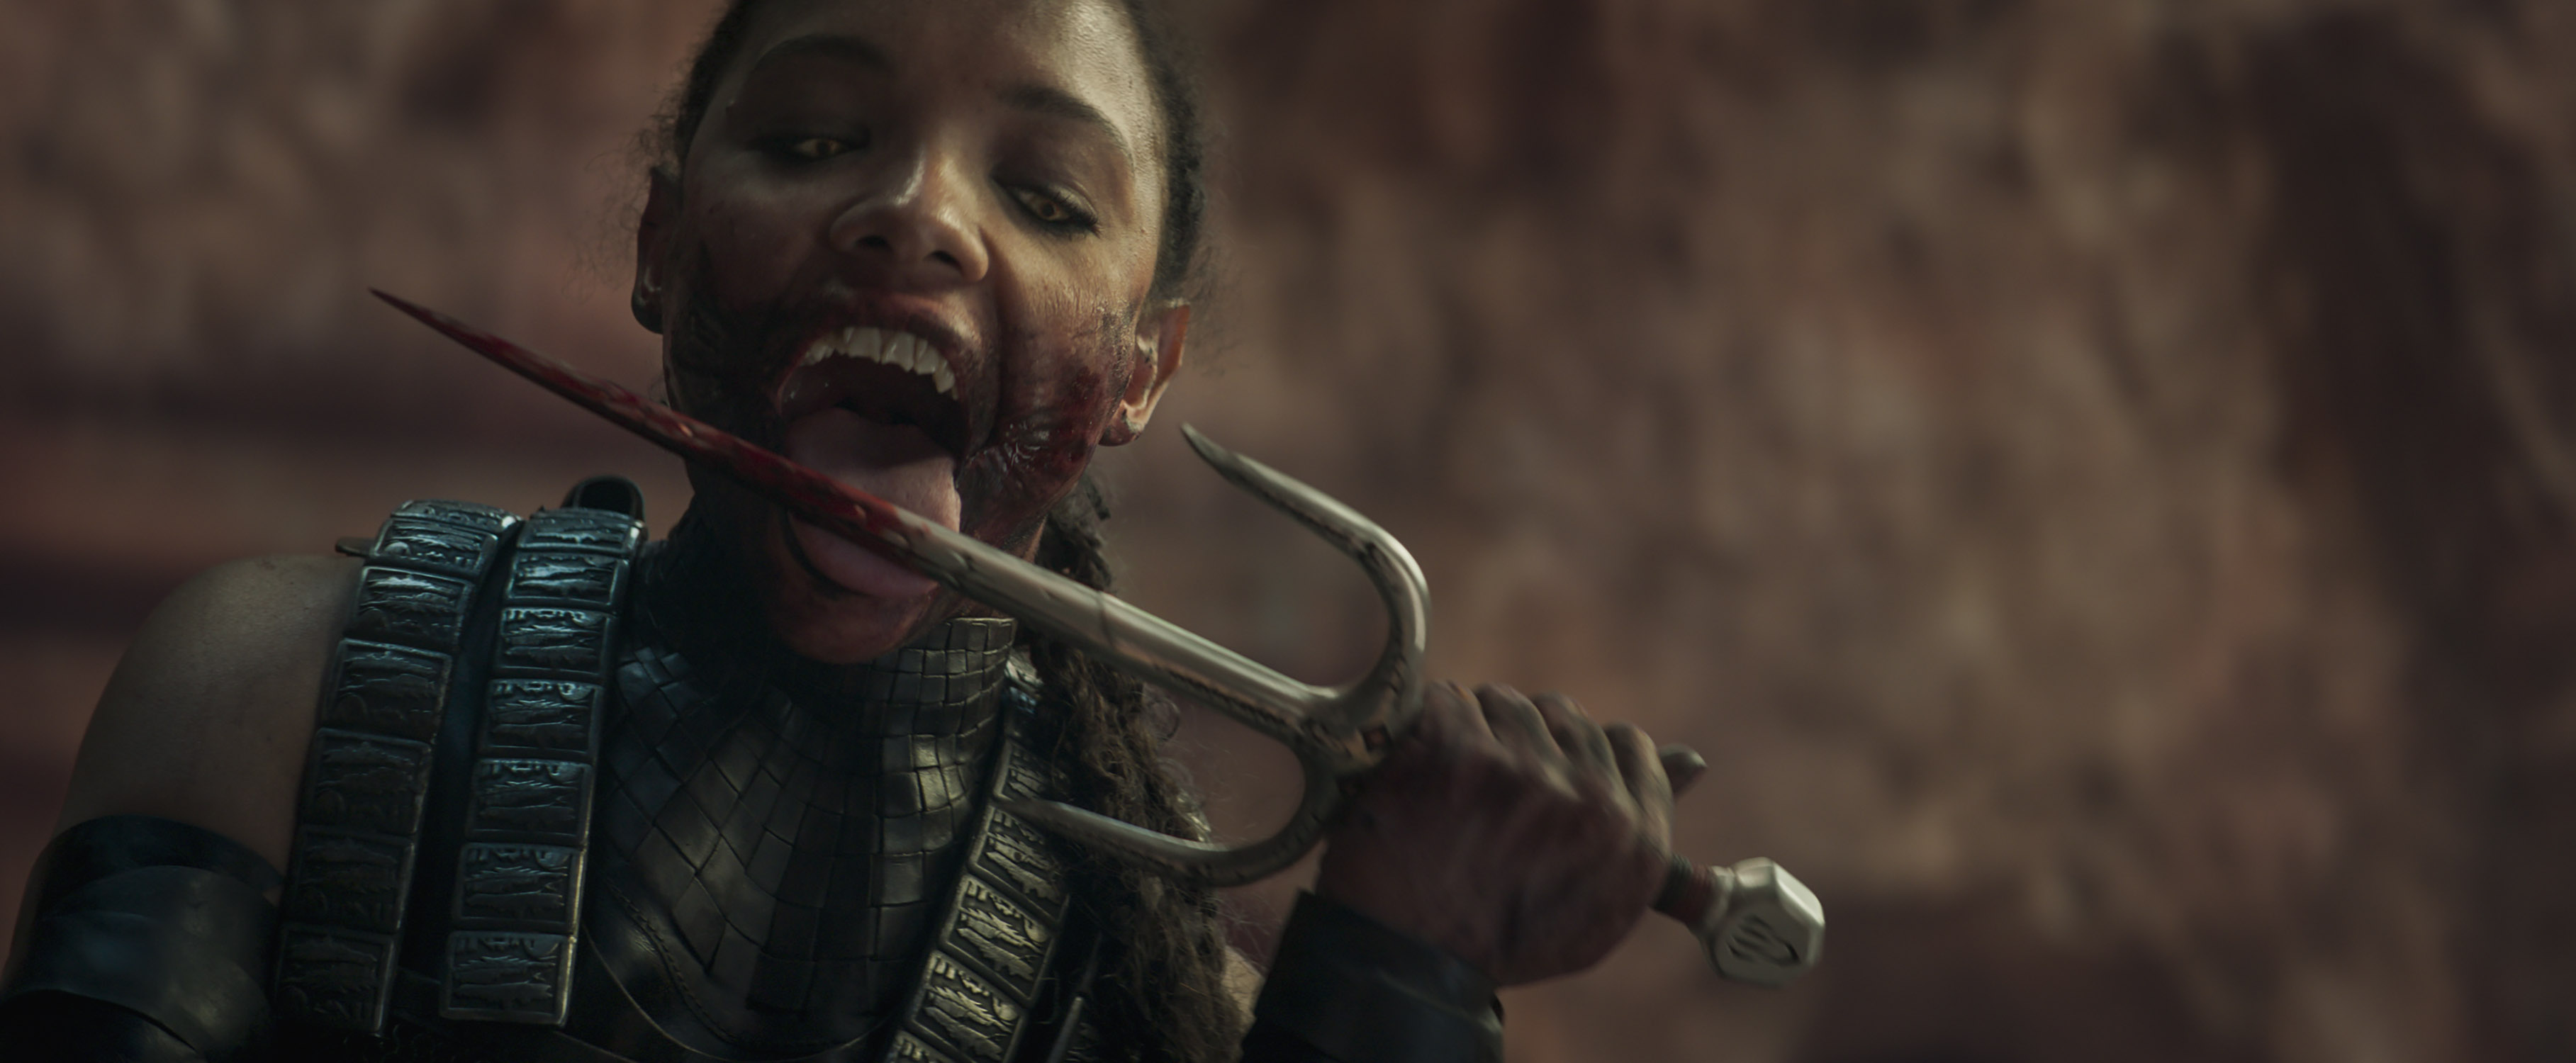 Twitter Absolutely Loves 'Mortal Kombat's Bloody First Trailer